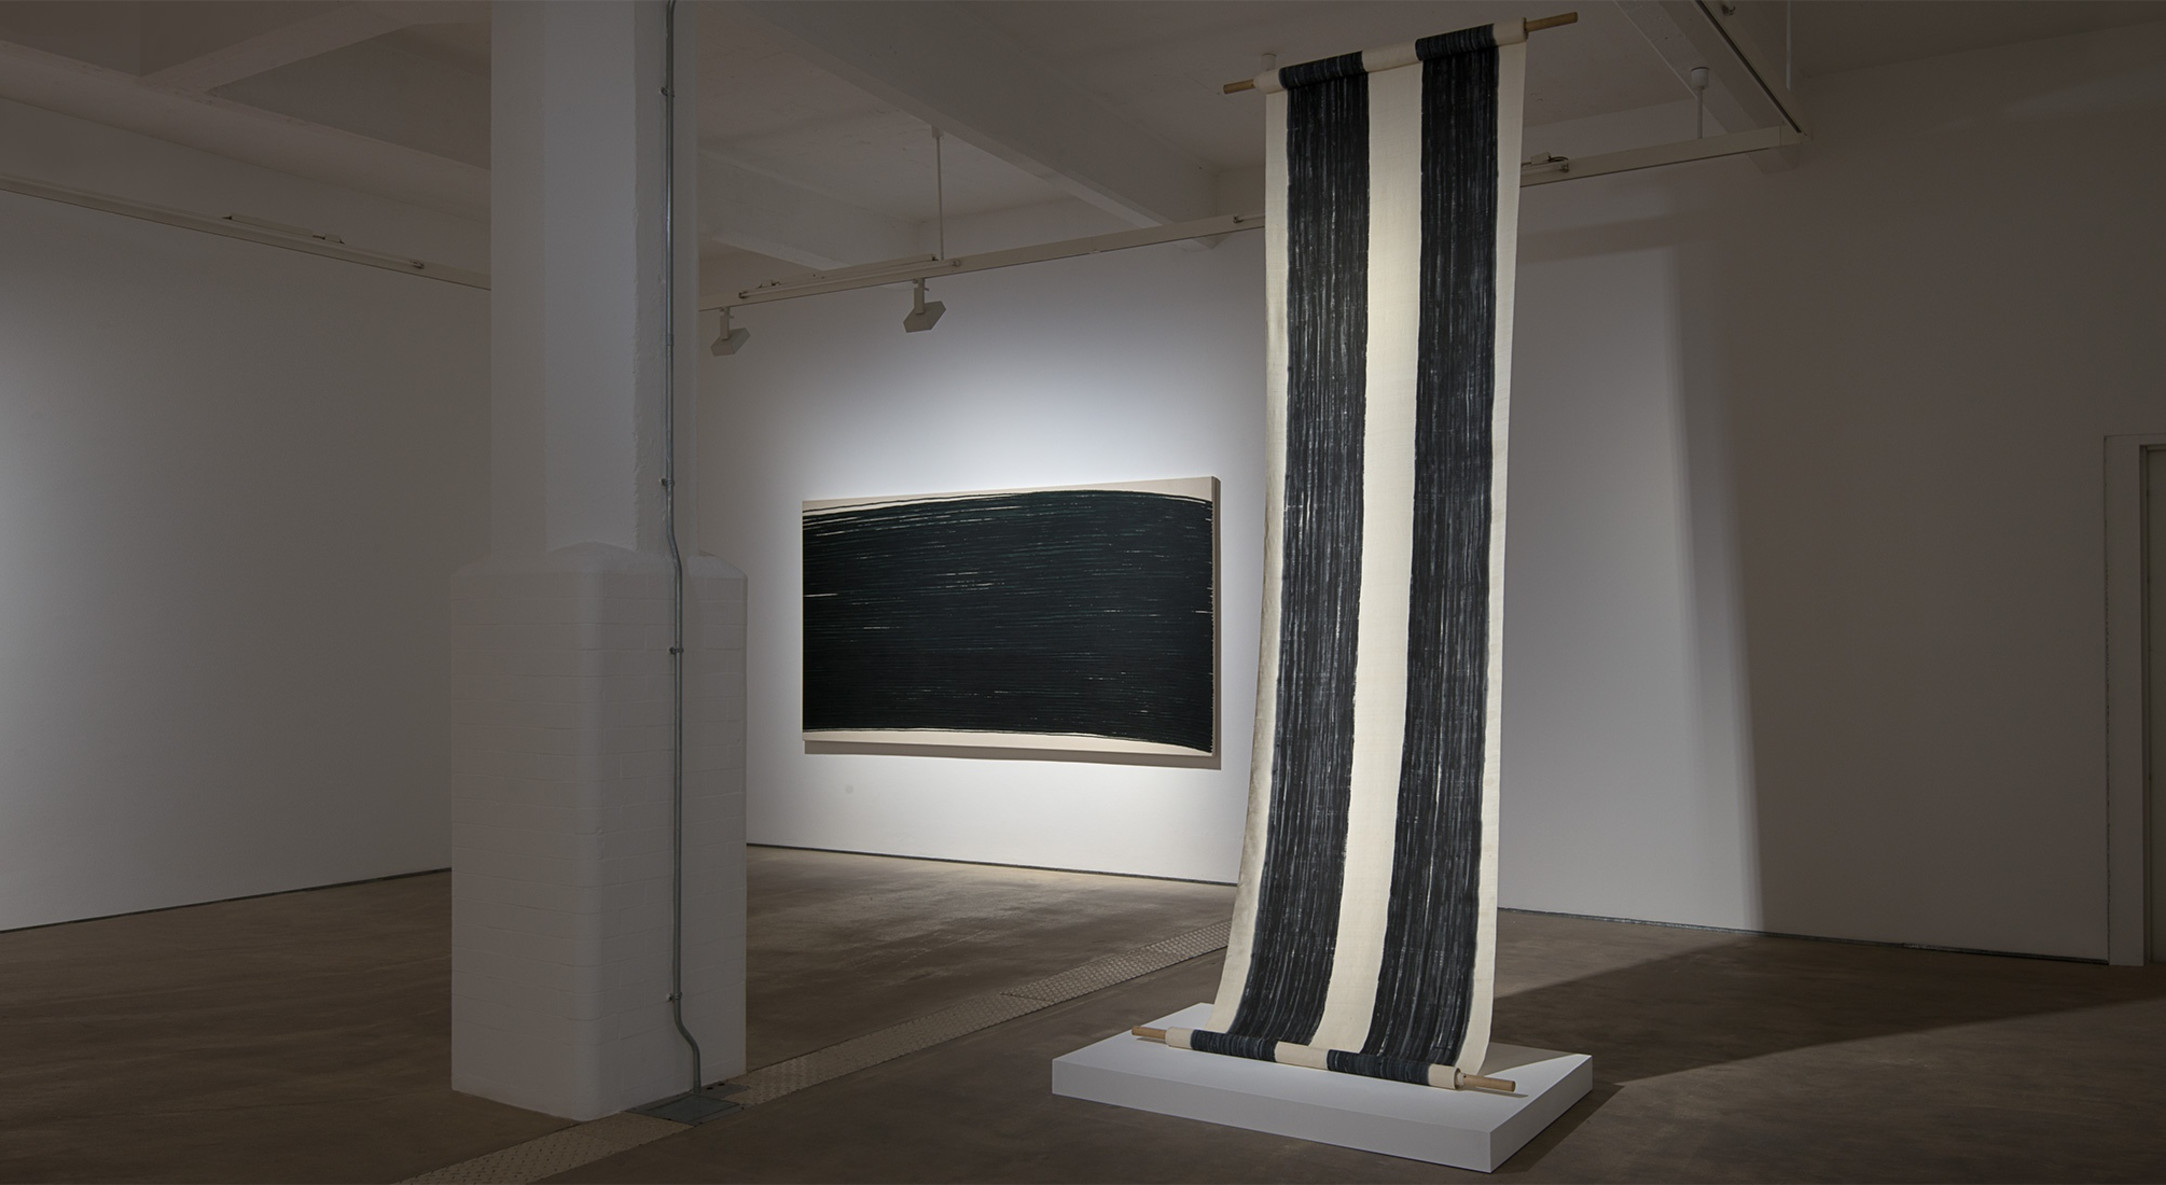 Installation view of Noel Forster, Para Physical at Hales London